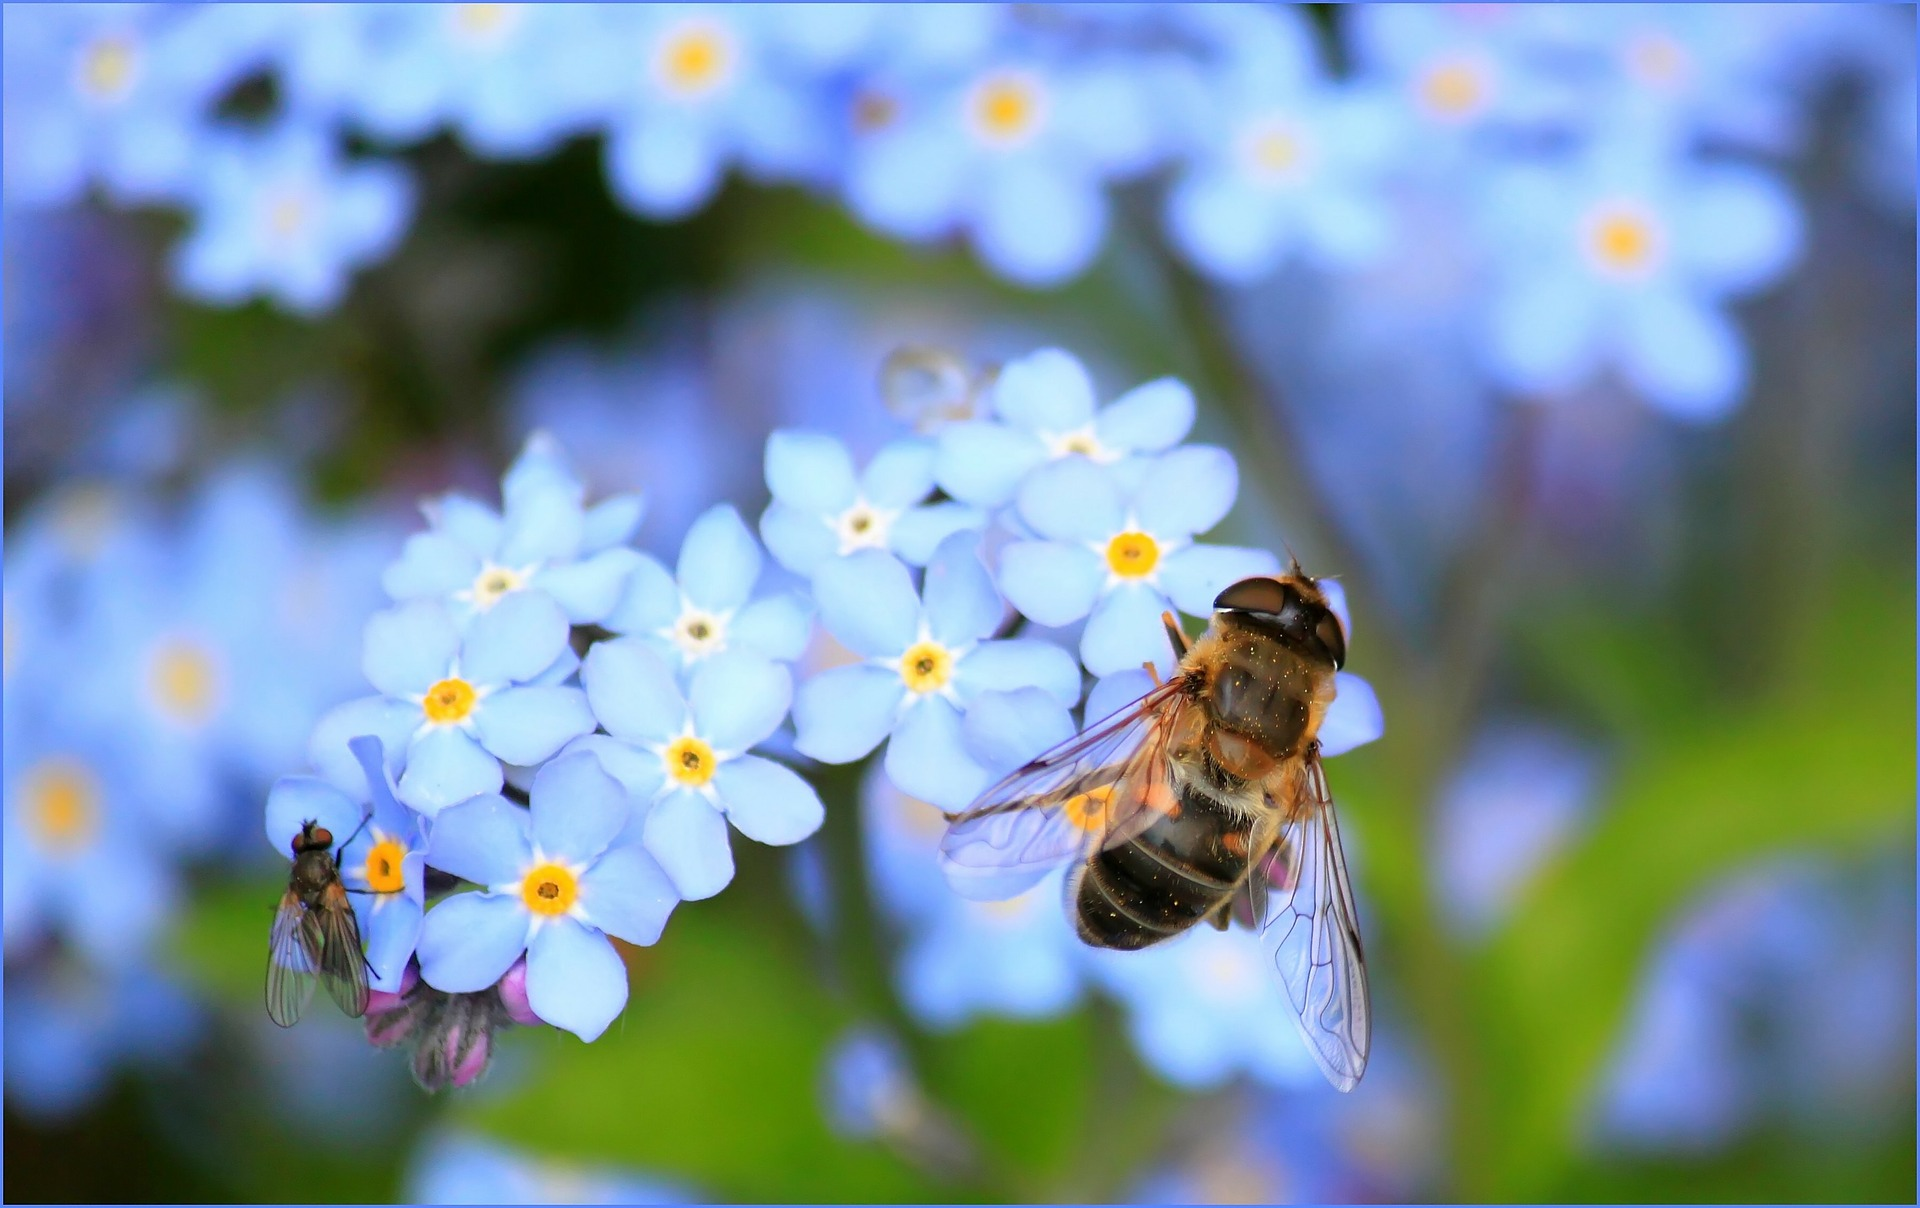 forget-me-not-257176_1920.jpg